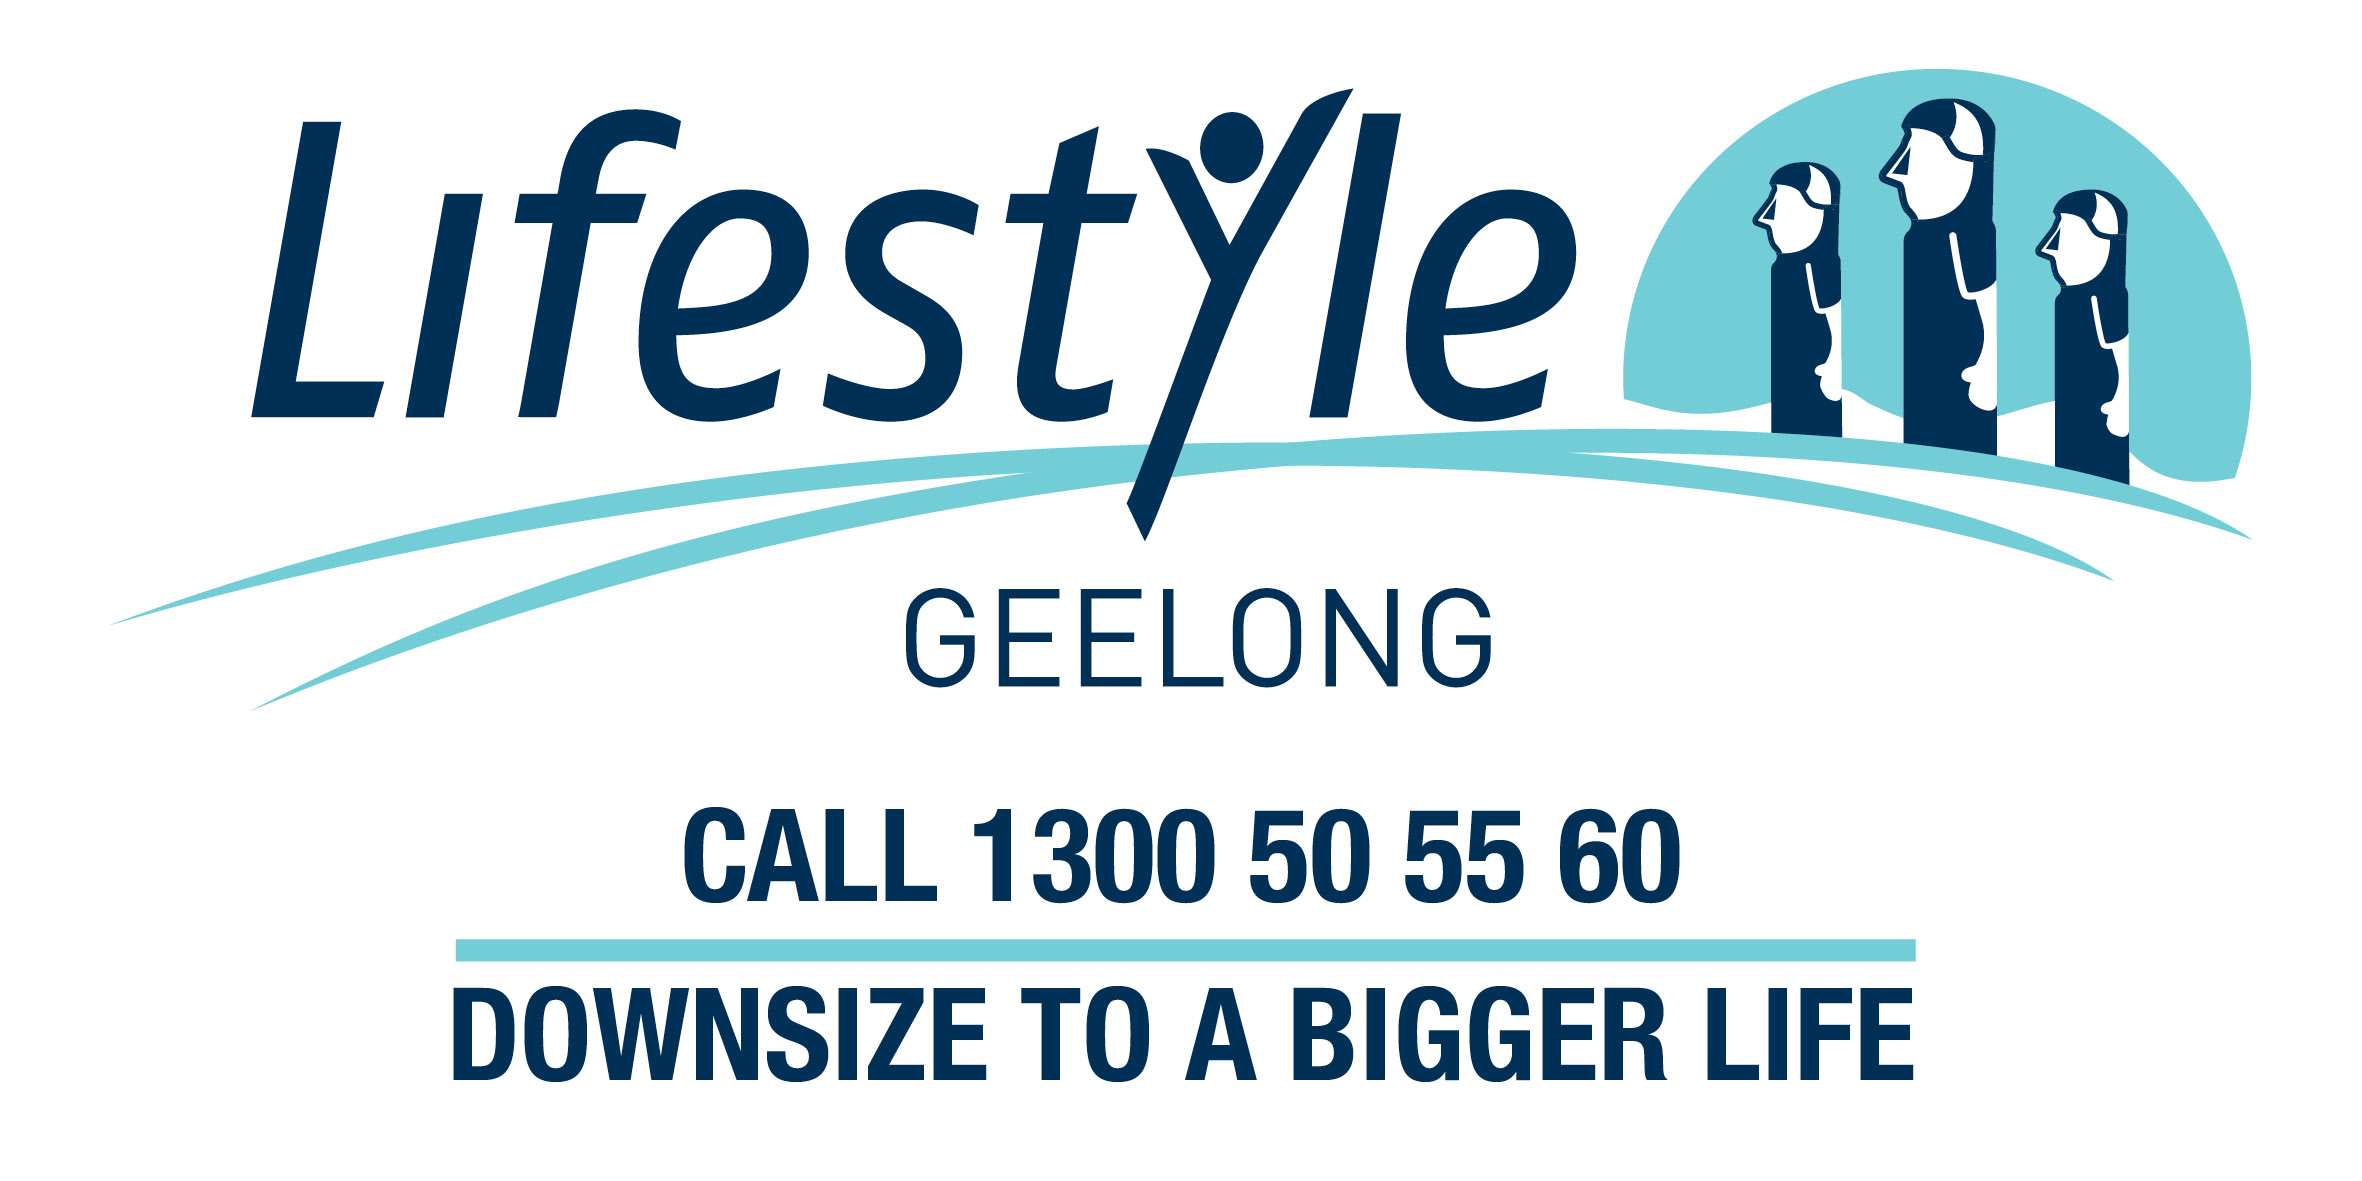 Lifestyle Geelong logo & phone - 100mm by 200mm